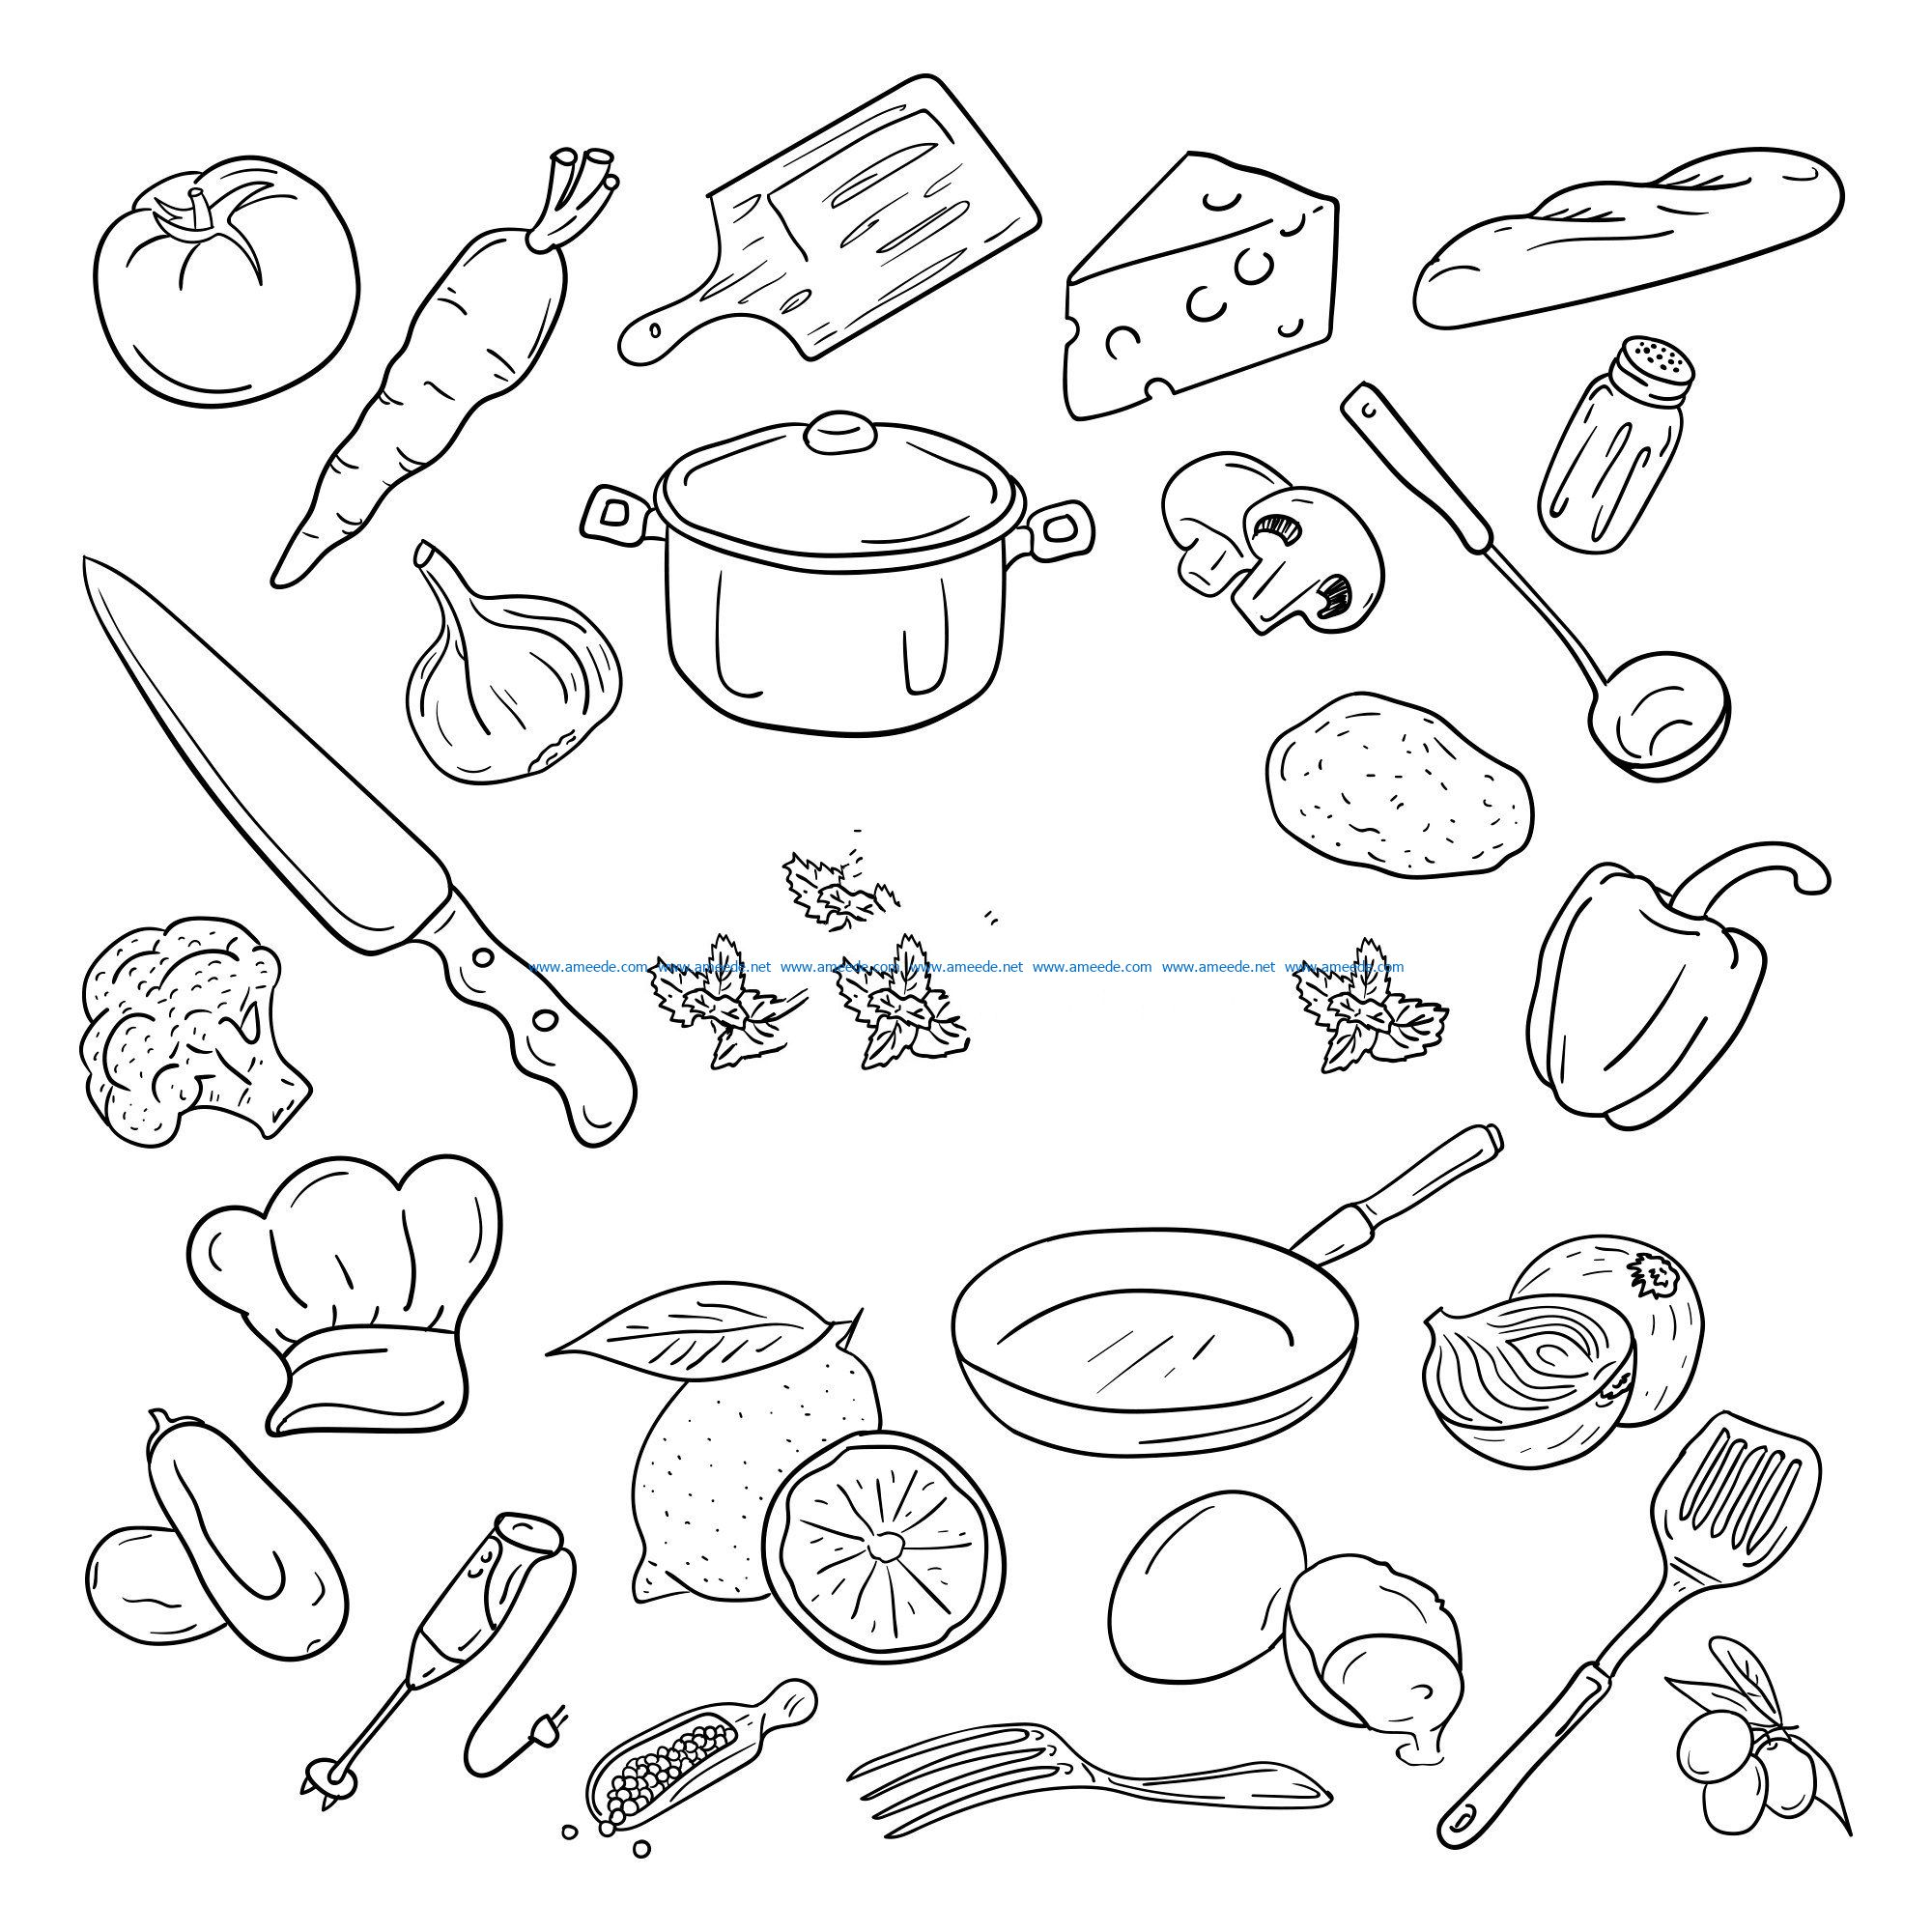 Cooking kits file cdr and dxf free vector download for print or laser engraving machines